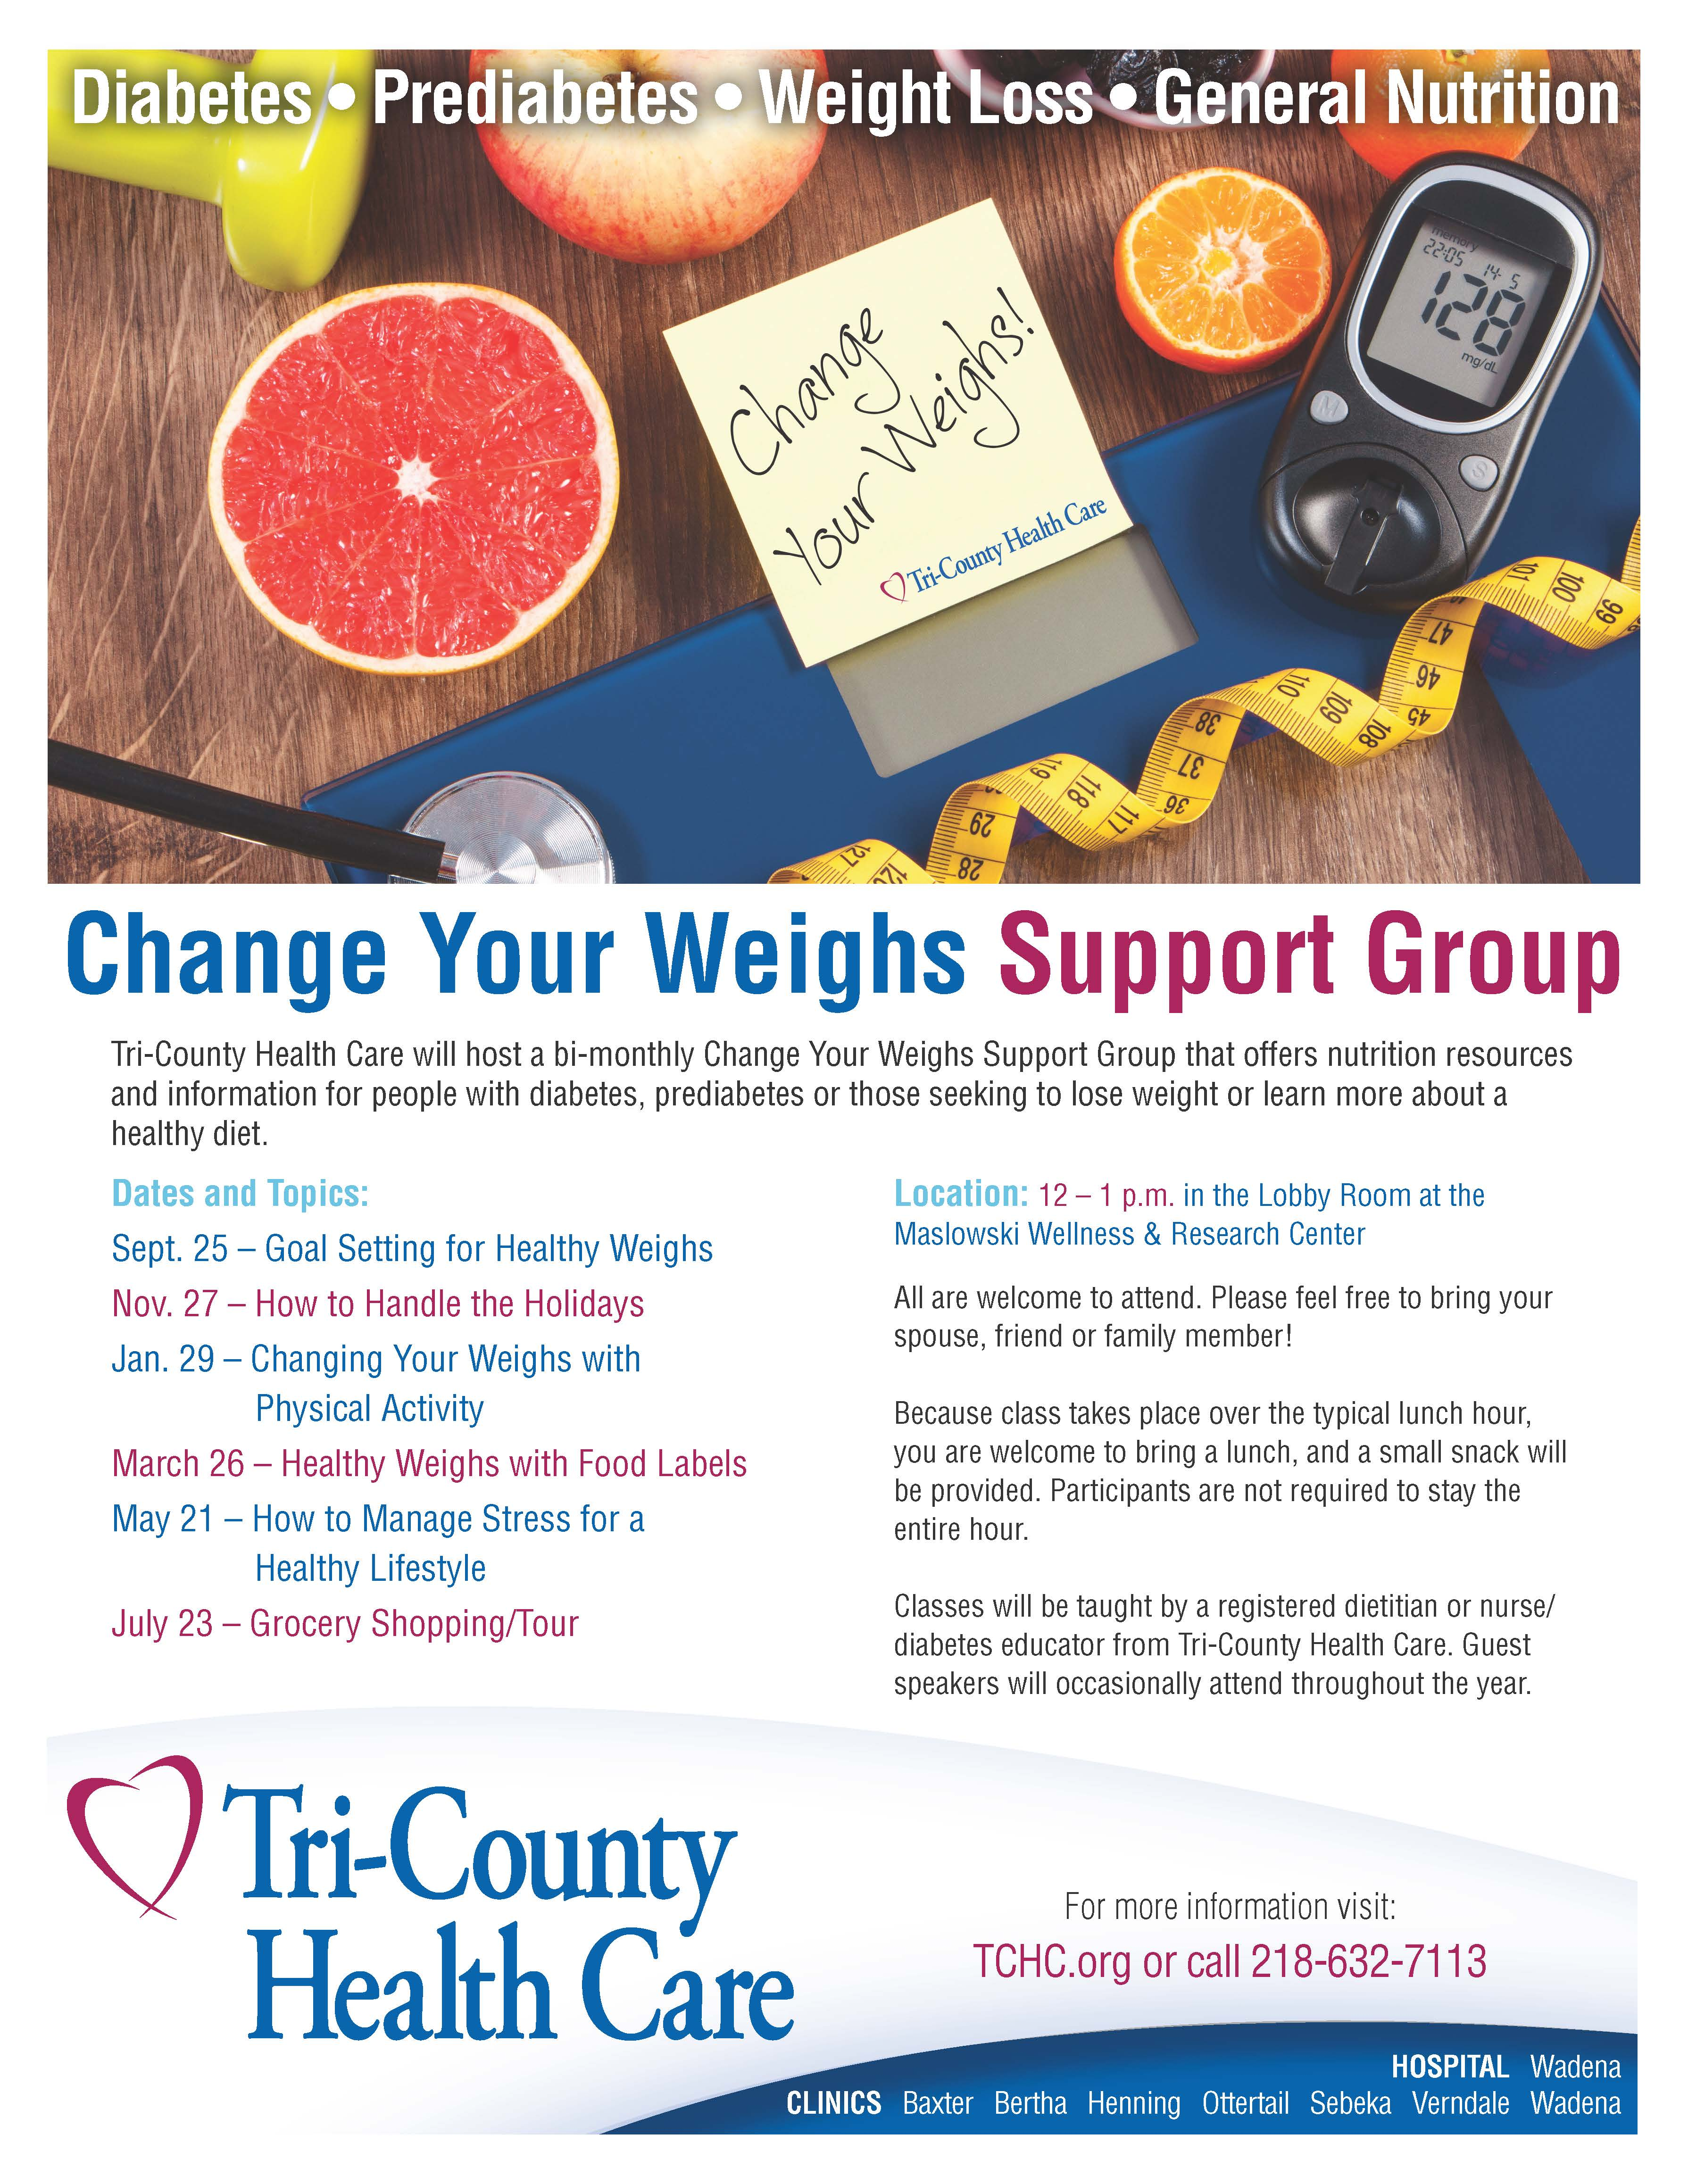 TCHC_Change_Your_Weighs_Flyer_0918.jpg